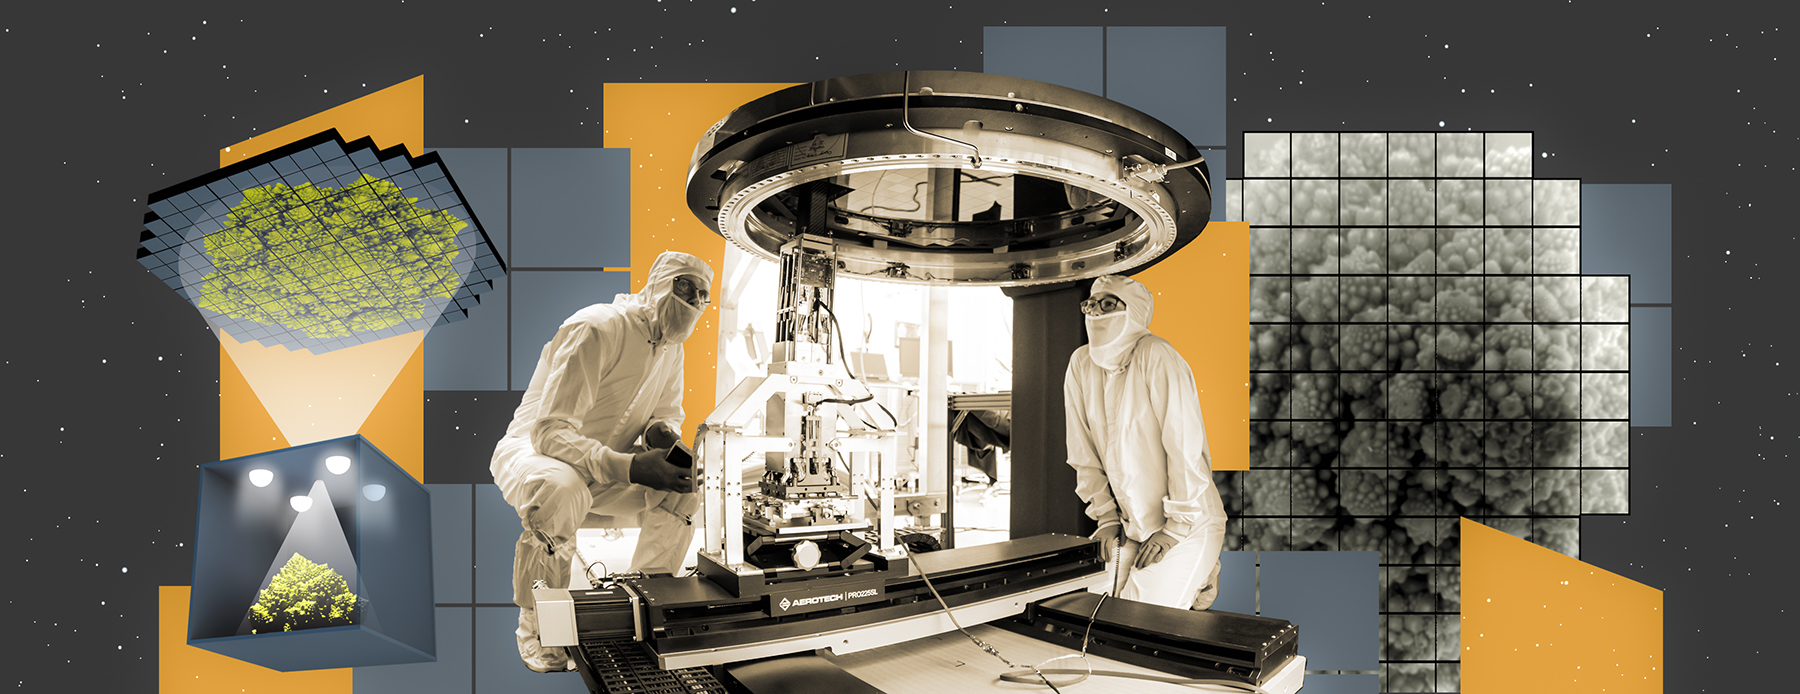 """Crews at the SLAC National Accelerator Laboratory have taken the first 3,200-megapixel images with the complete focal plane of the LSST Camera, the future """"eye"""" ofthe VeraC.RubinObservatory. They are the largest digital images ever taken in a single shot. One of the first objects photographed was a Romanesco broccoli, chosen for its very detailed texture."""